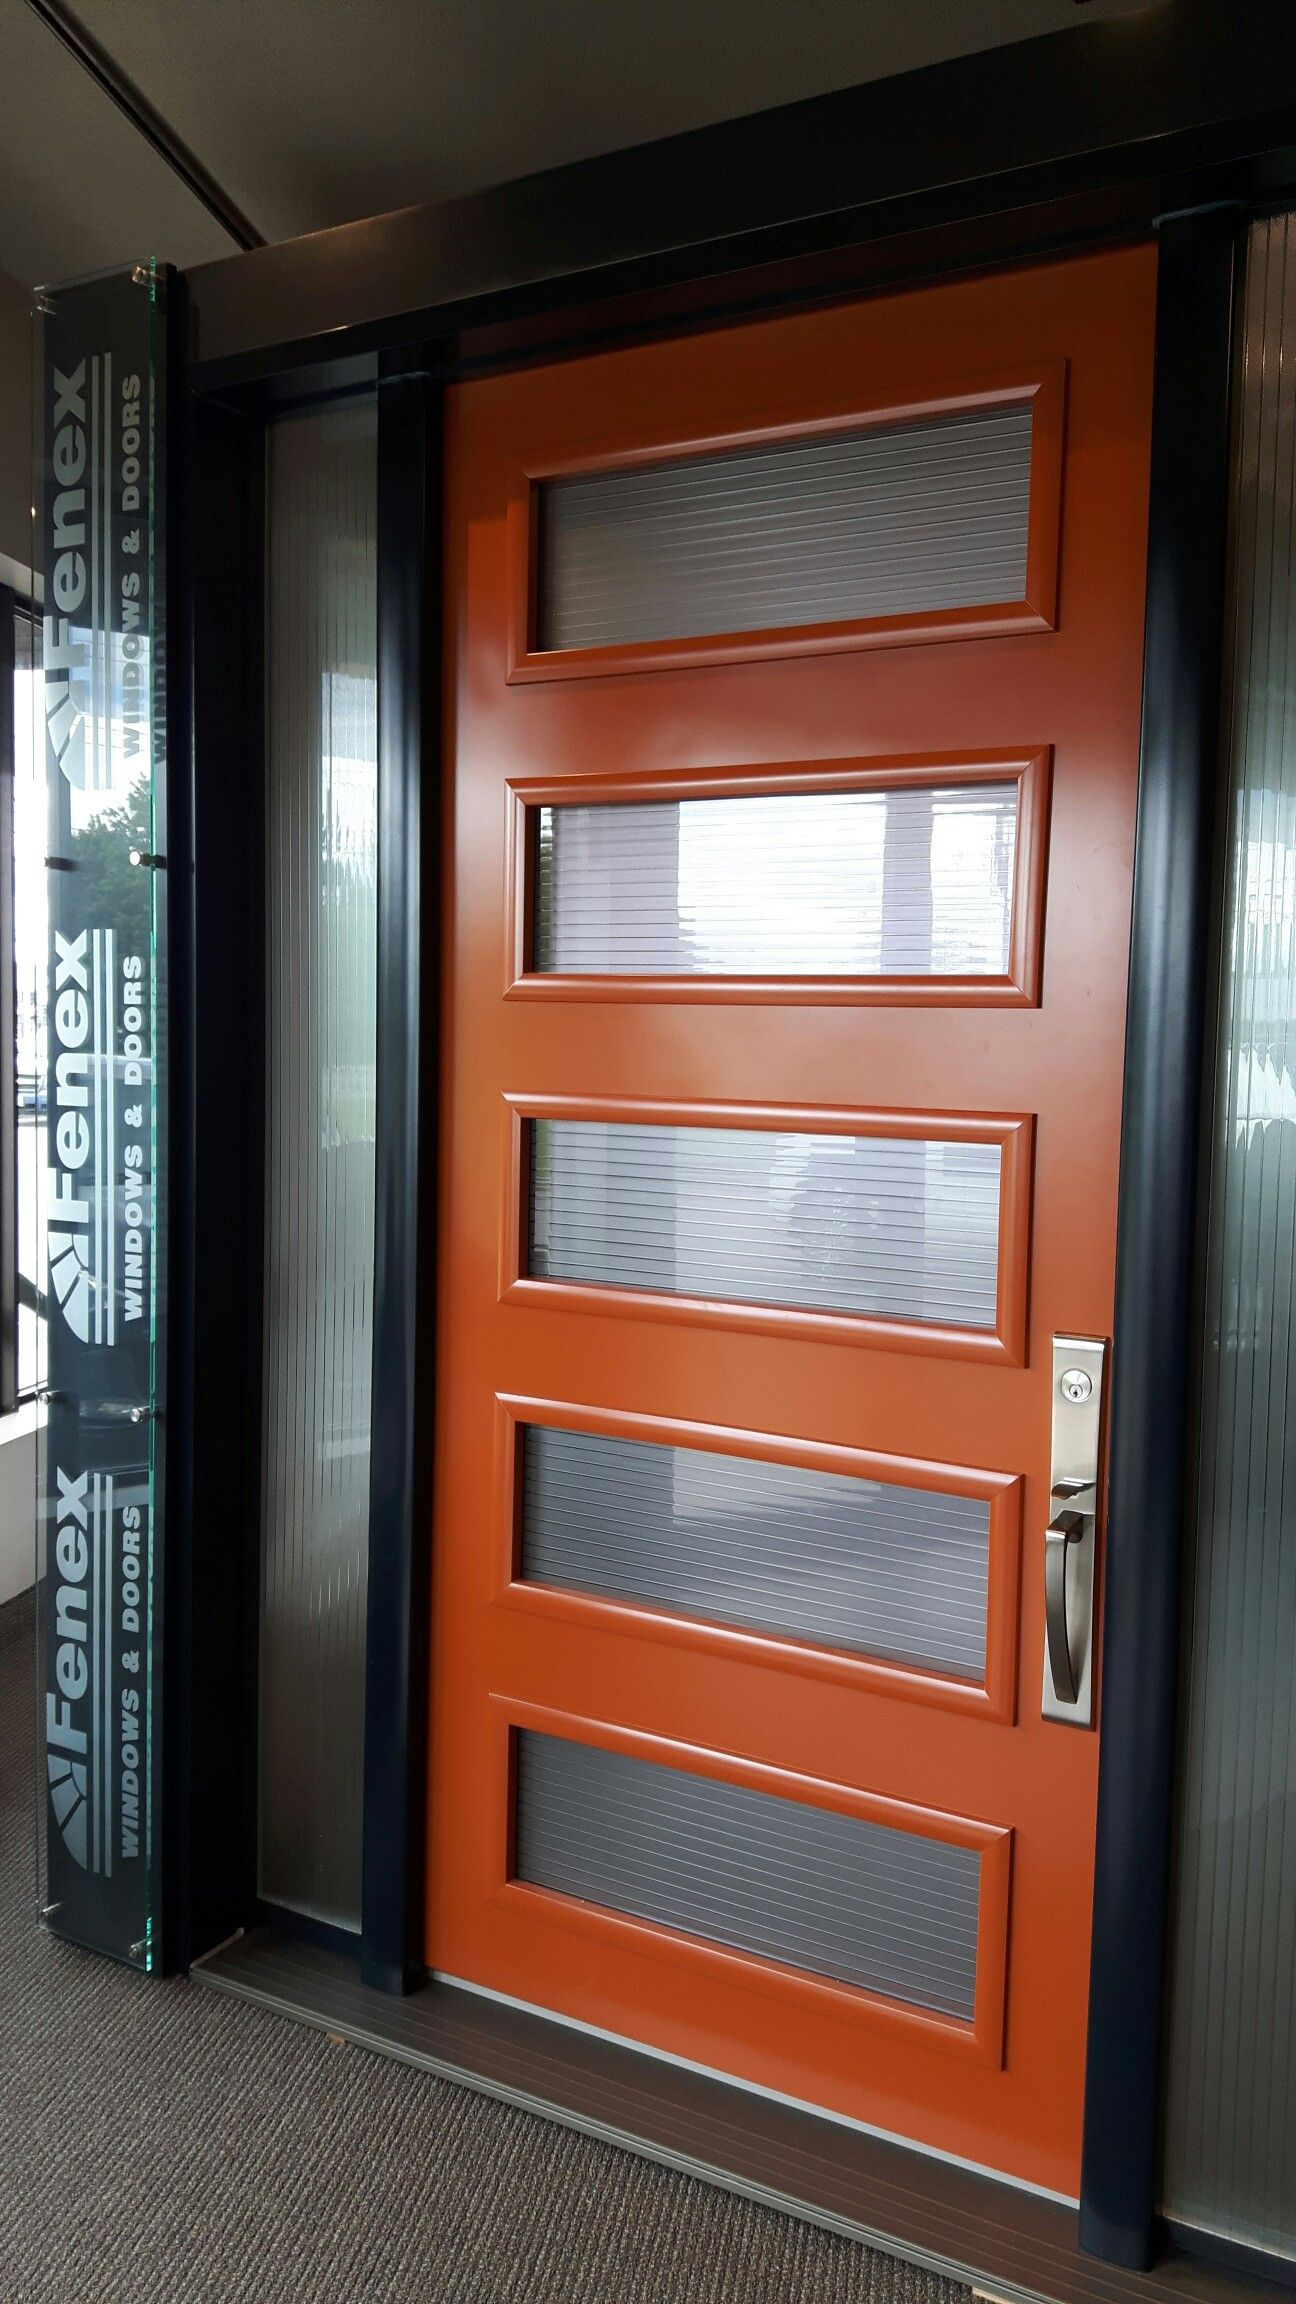 glass window front suppliers replacing double door pane inserts lowes replacement buy doors entry in for